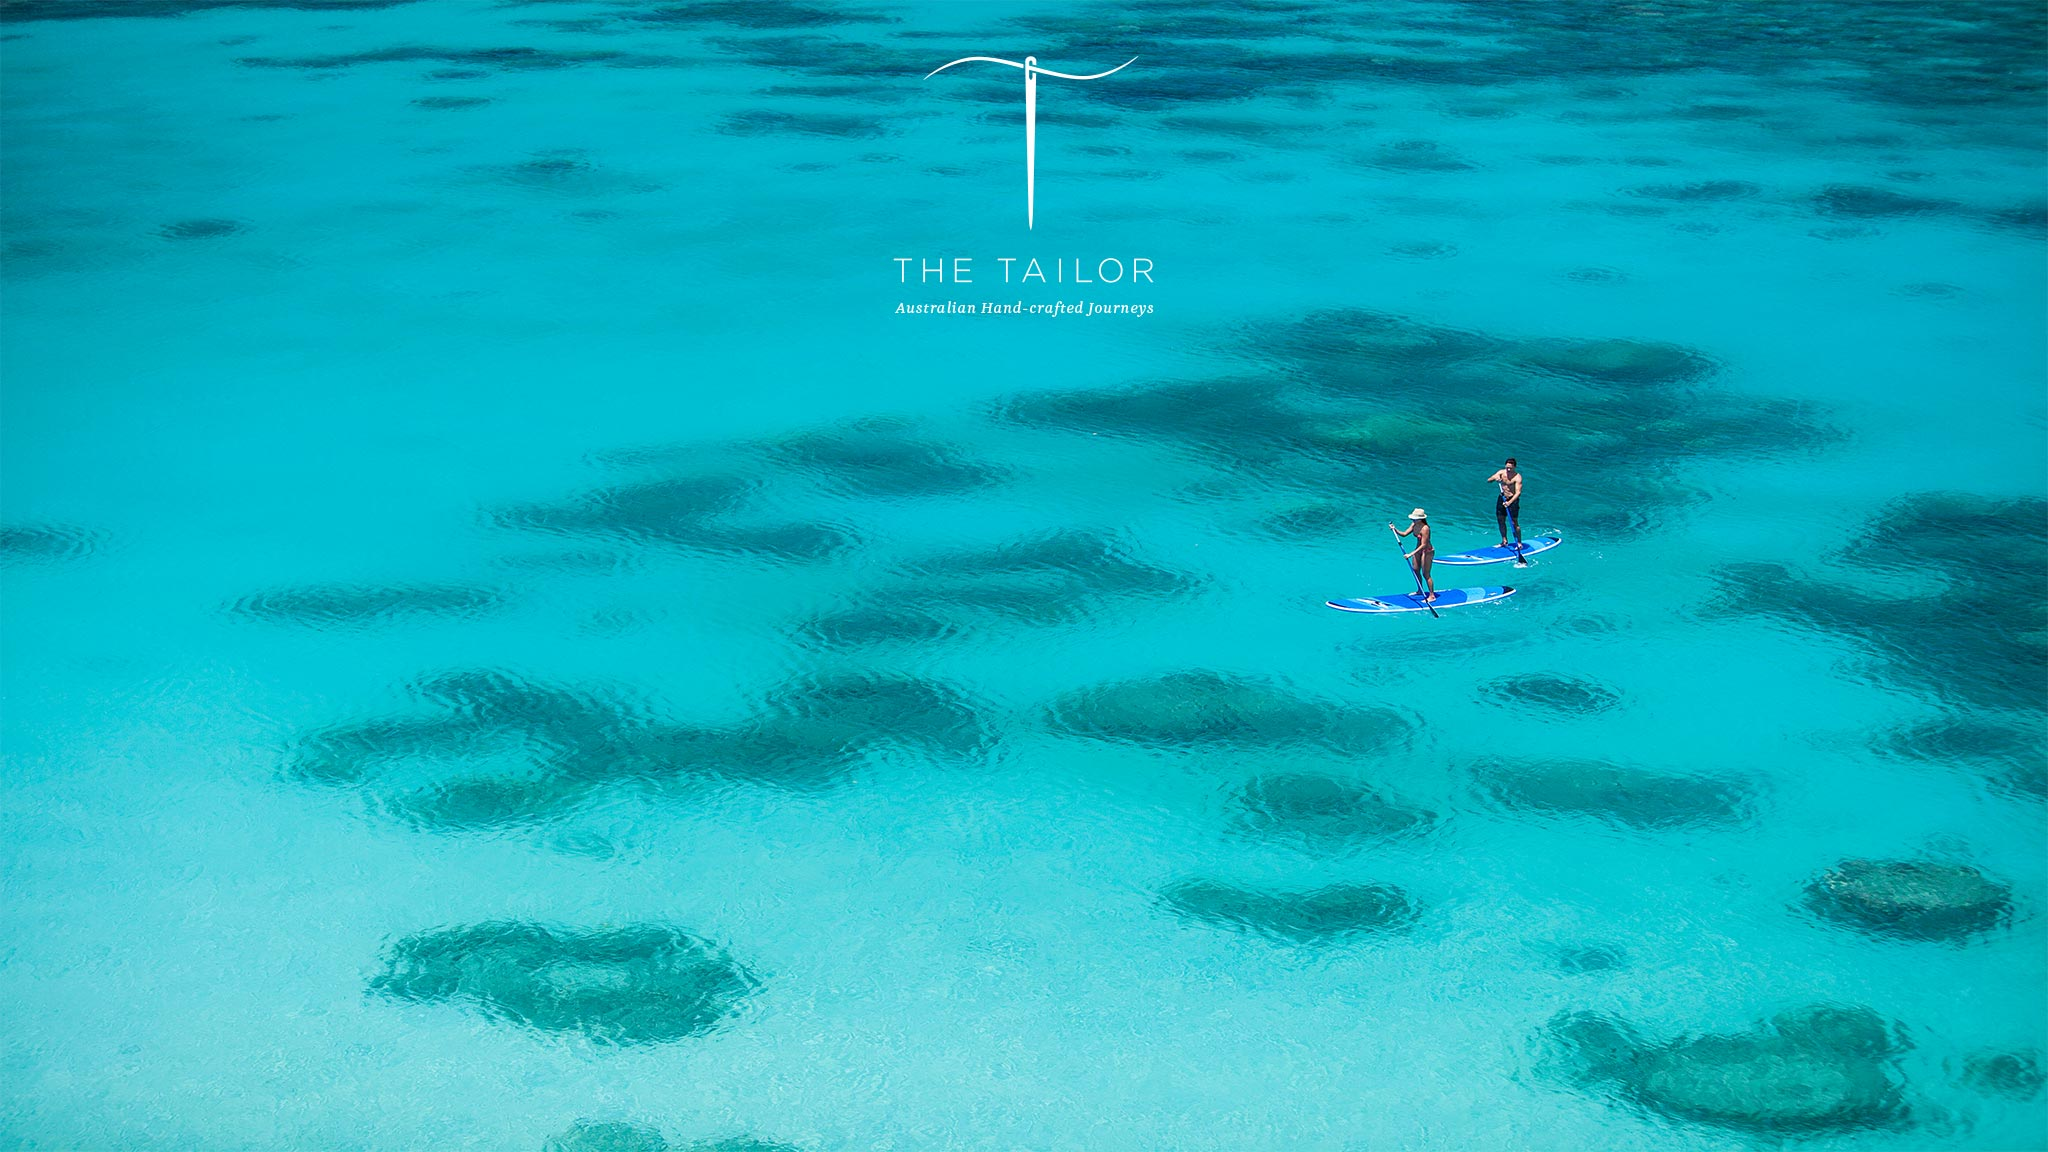 Thumbnail for the listing 'The Tailor – Luxury Travel Australia'